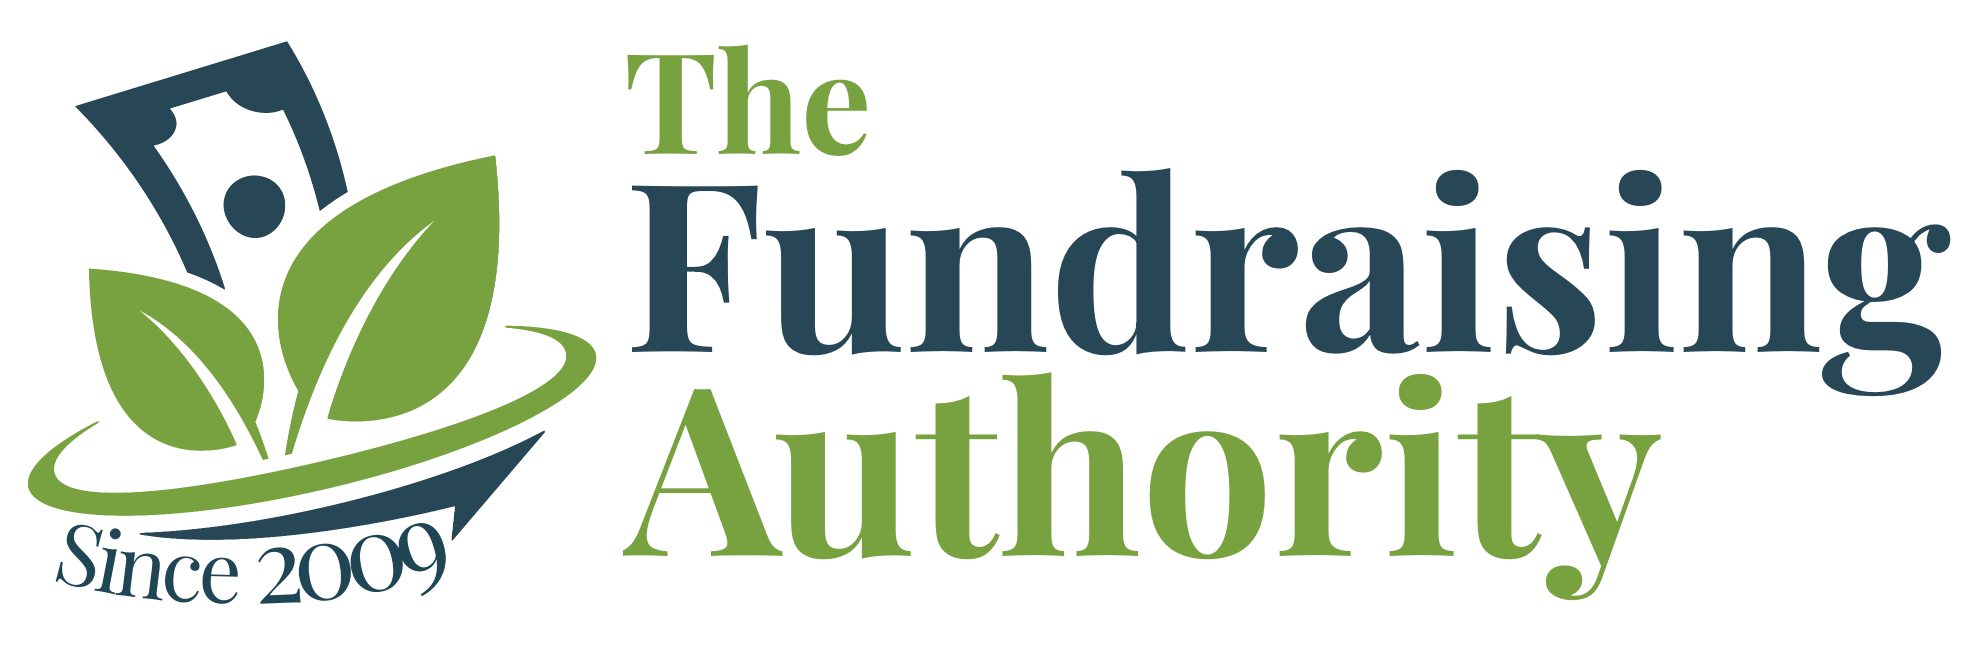 The Fundraising Authority